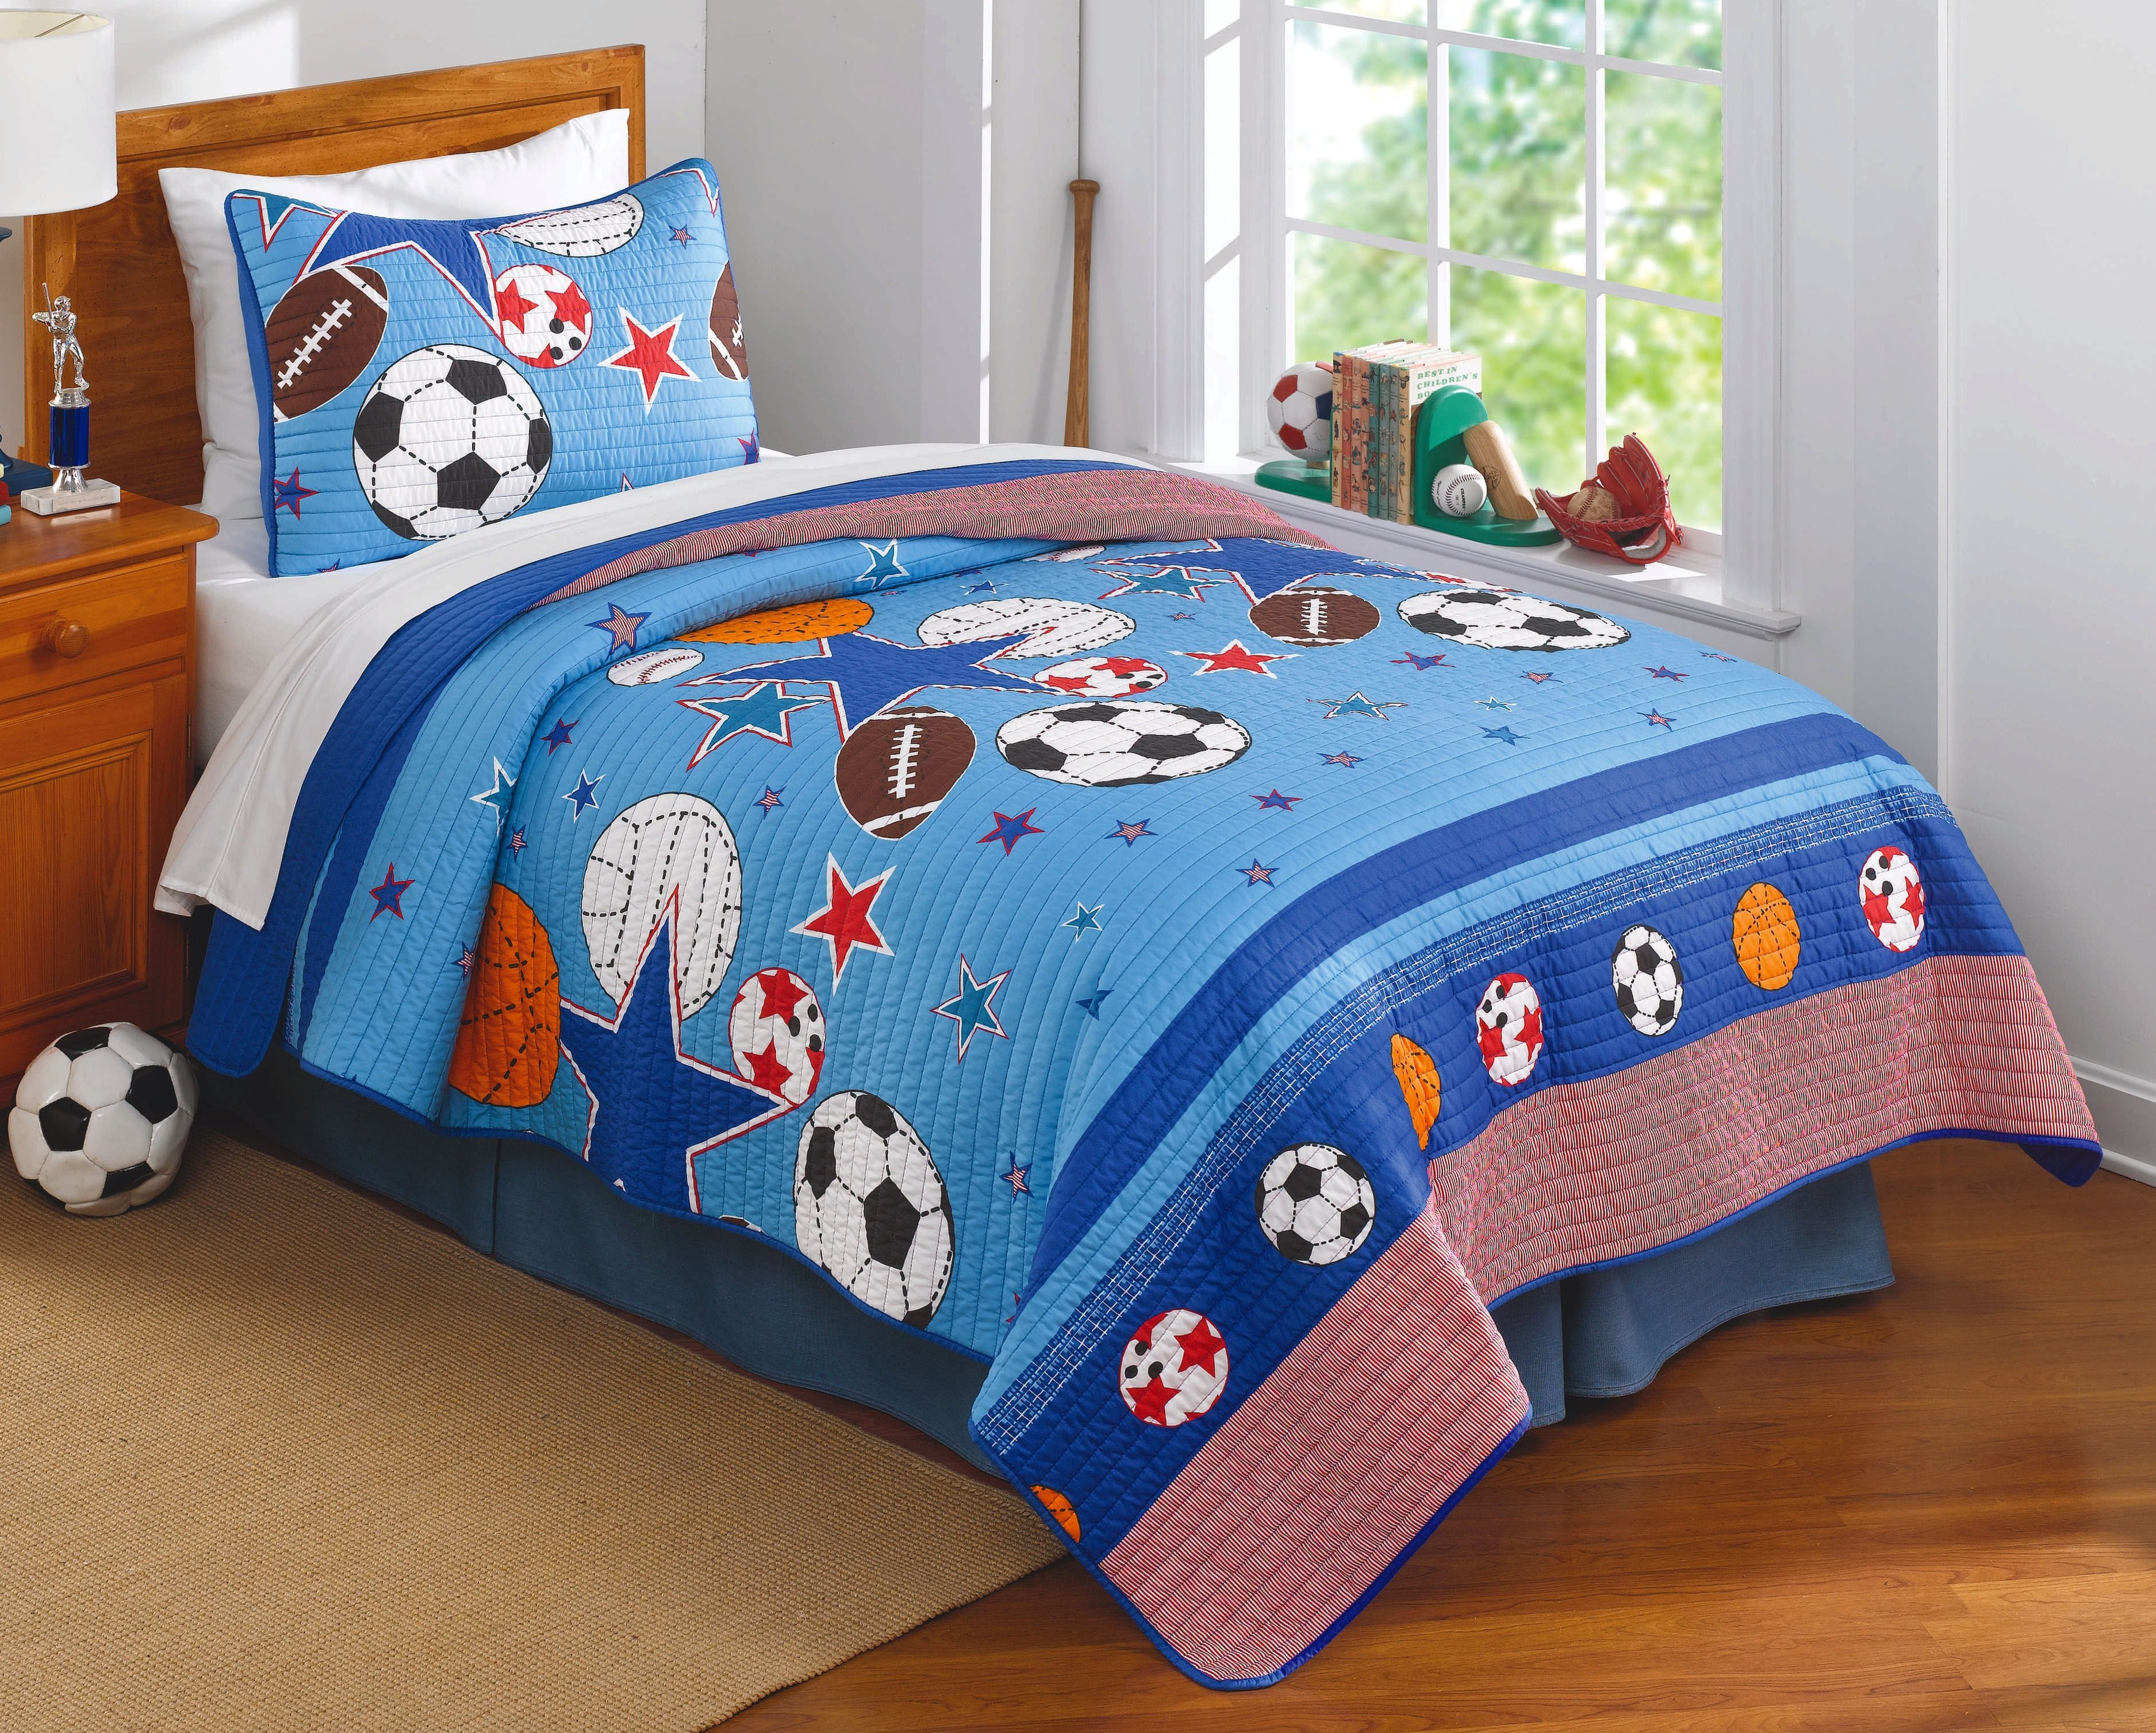 decorl queen stunning asli aetherair design all co sheets room picture basketball bedroom comforter bedding sports size phenomenal sets